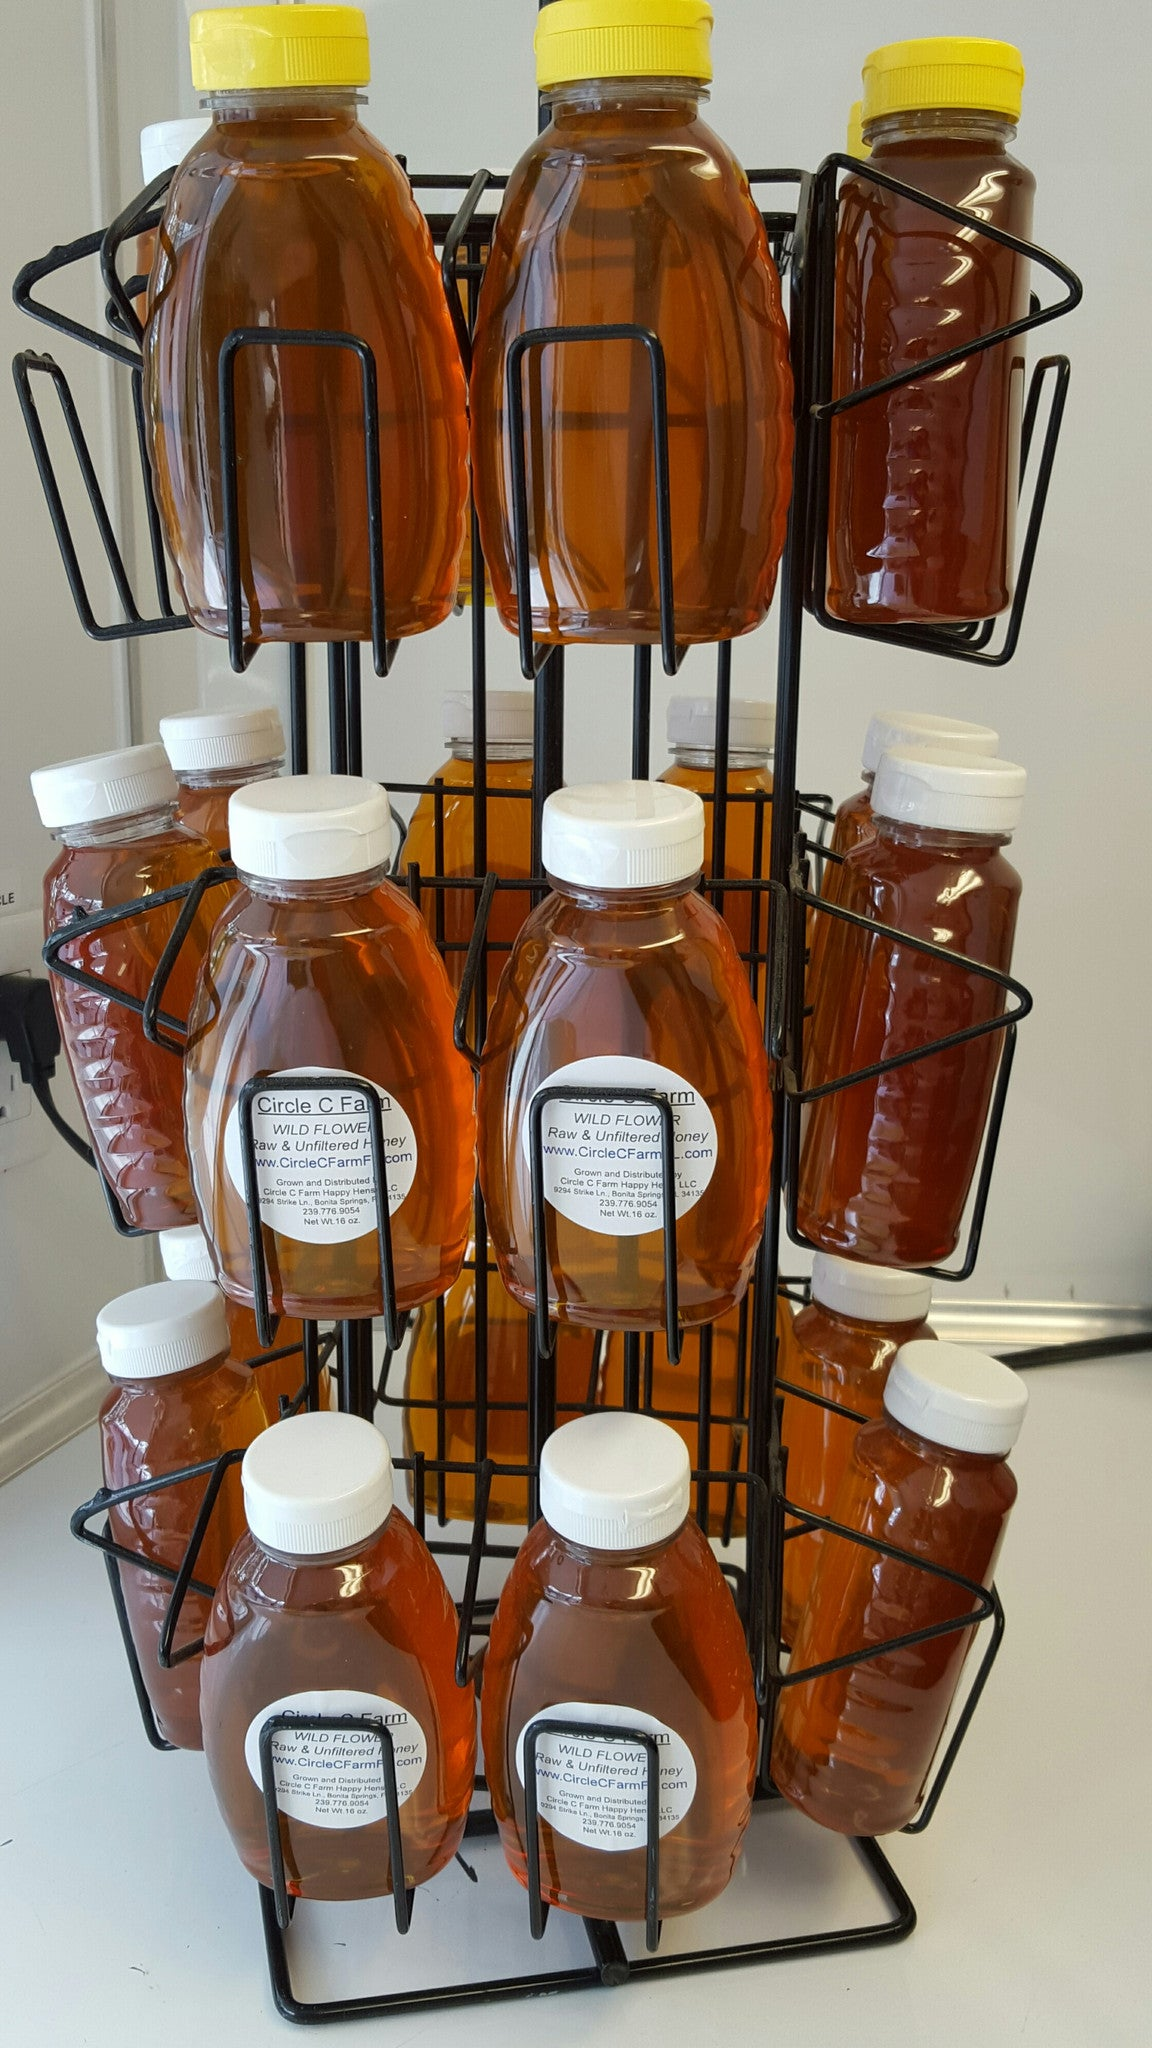 Circle C Farm Honey... the Amazing Health Benefits of Our 100% Raw Unfiltered Local Honey